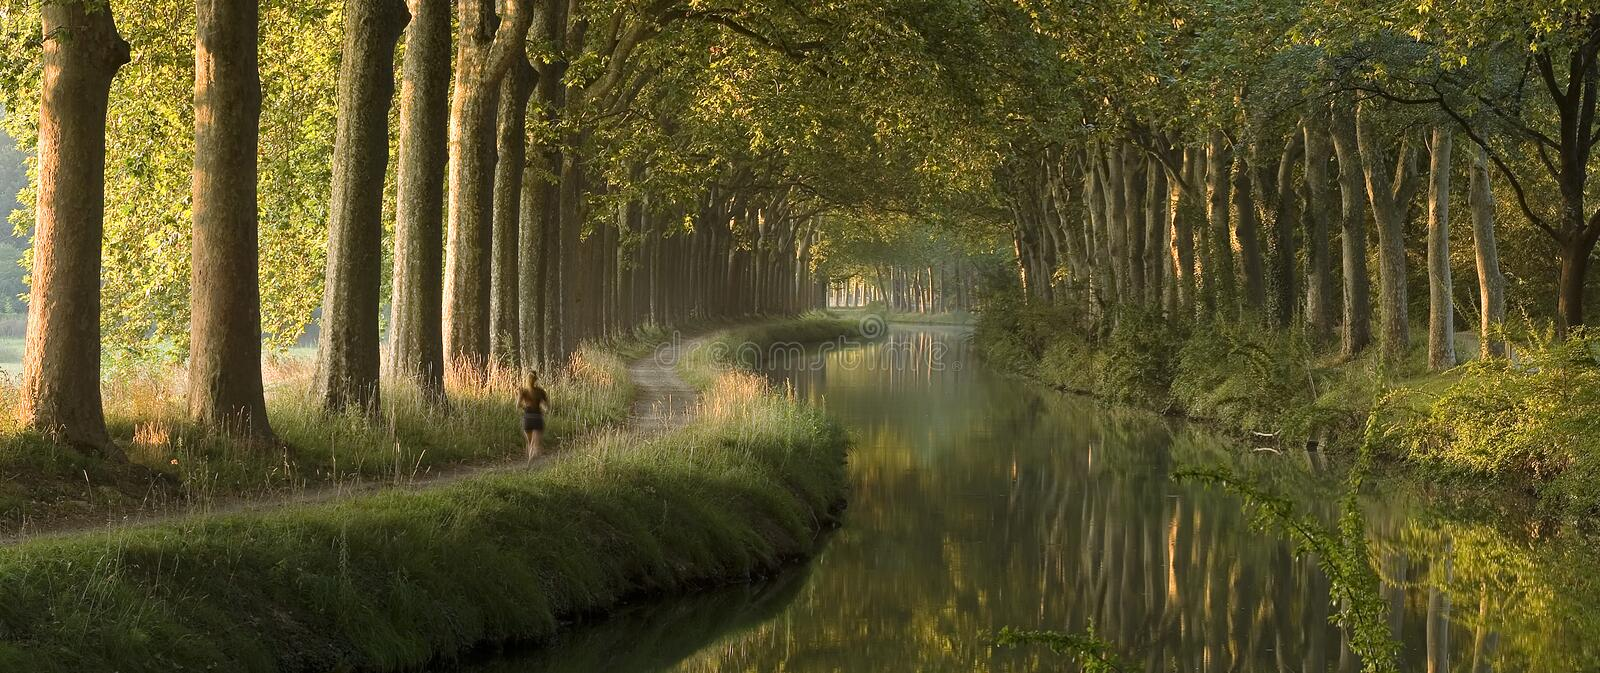 Canal du Midi in the morning (panorama) royalty free stock image